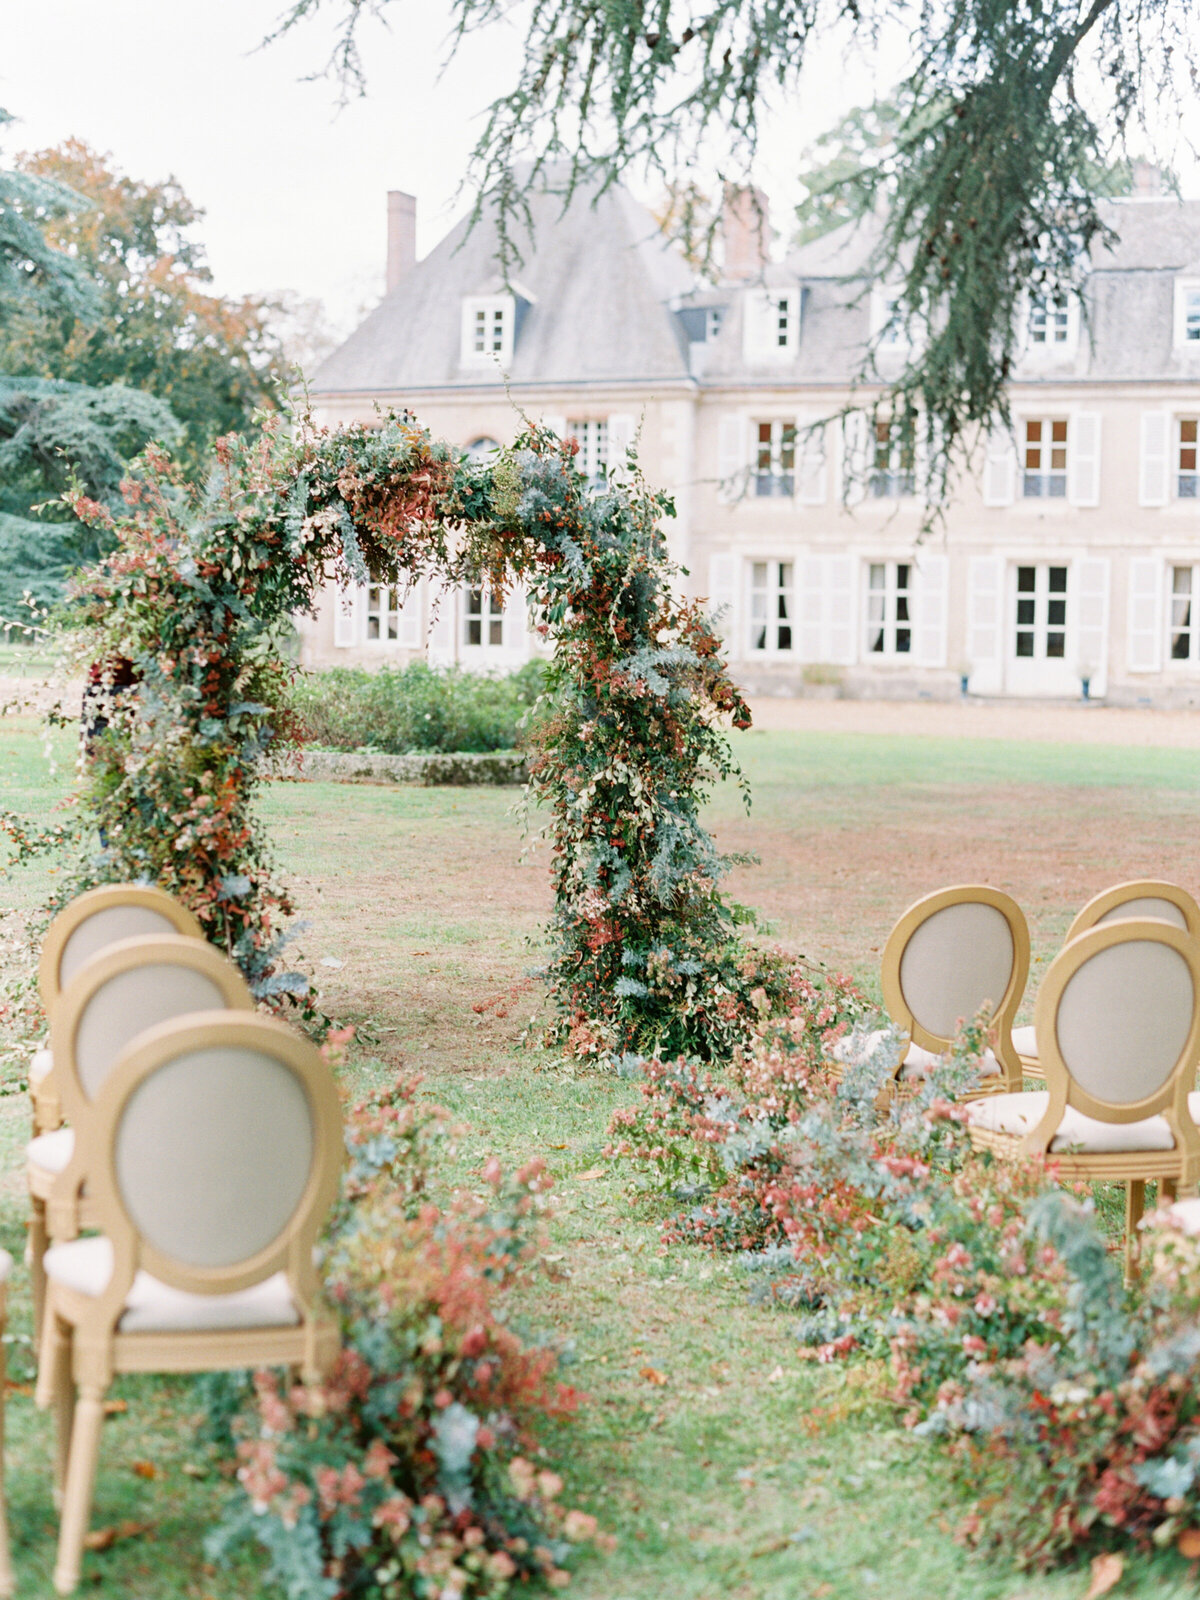 chateau-bouthonvilliers-wedding-paris-wedding-photographer-mackenzie-reiter-photography-34